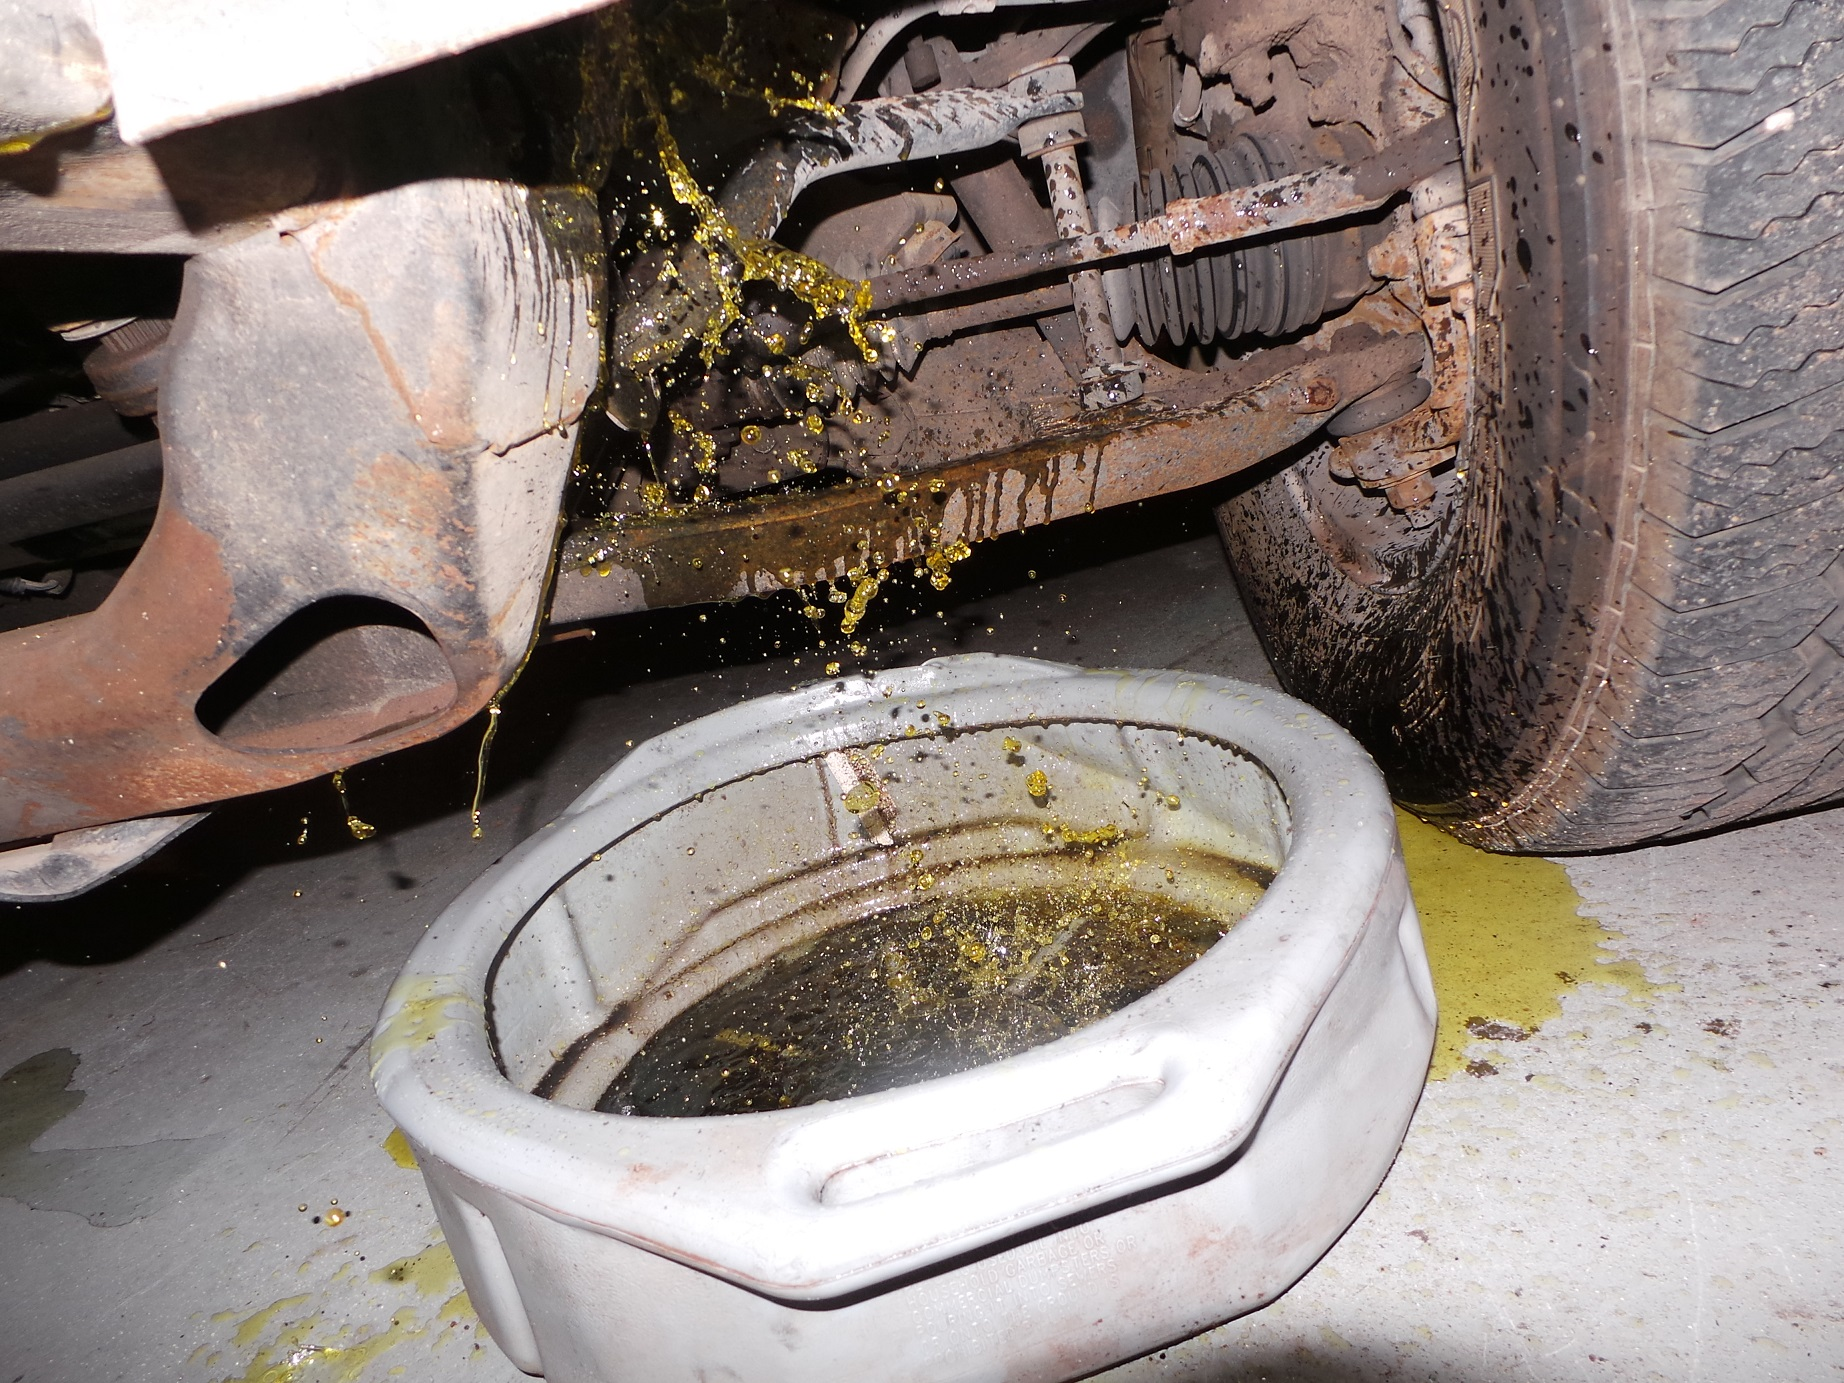 Draining the coolant is necessary, make sure it is properly disposed off.